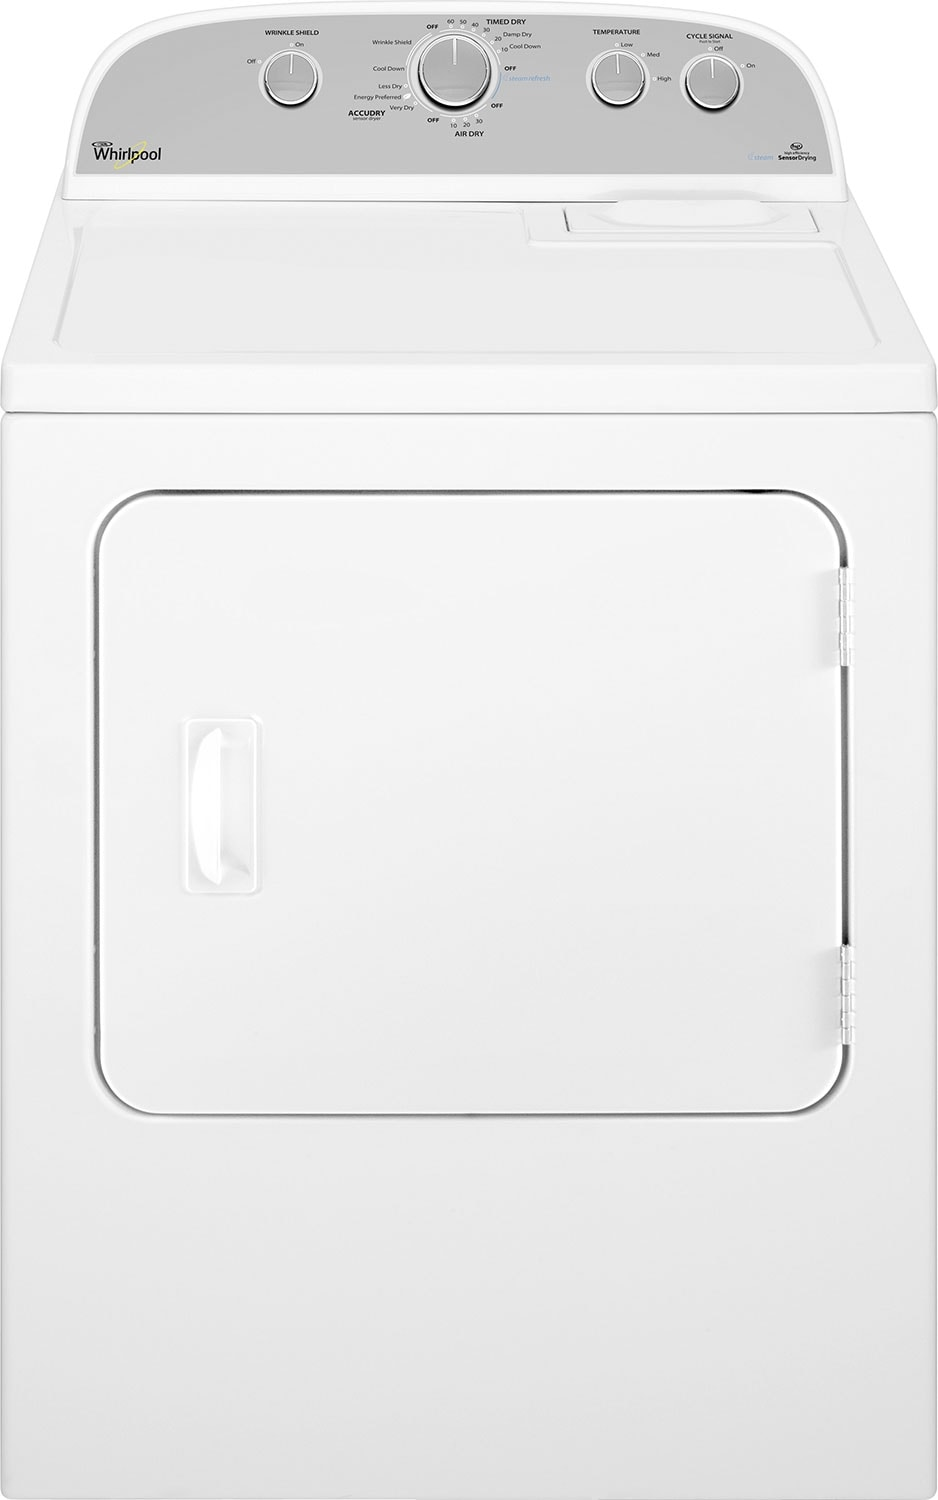 Whirlpool® Duet® 7.0 Cu. Ft. High-Efficiency Electric Dryer - White